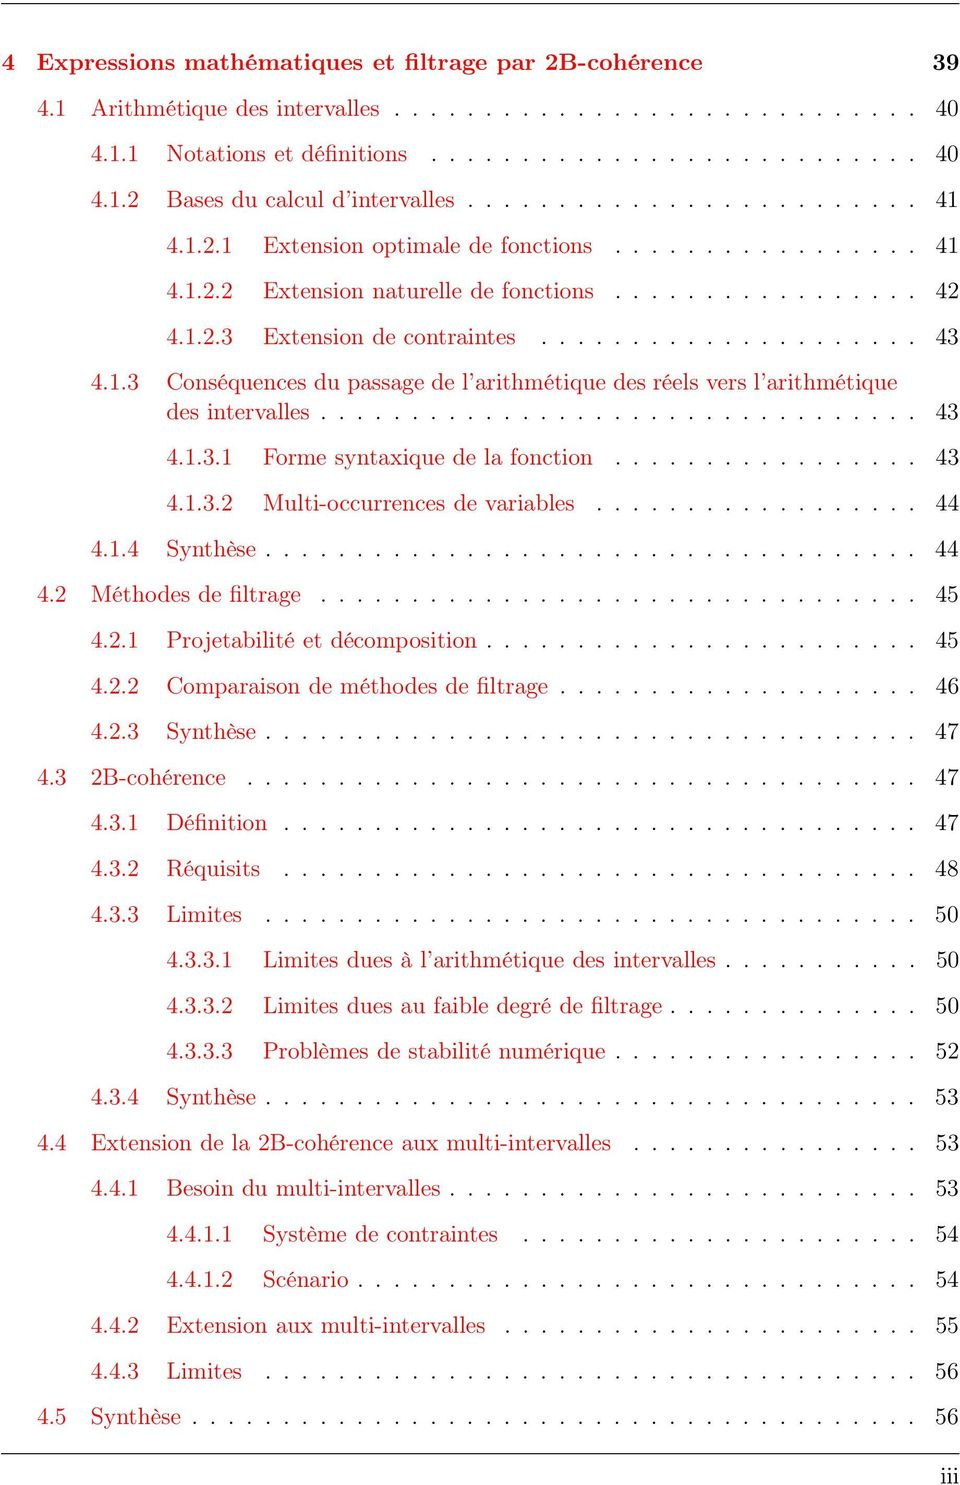 1.3 Conséquences du passage de l arithmétique des réels vers l arithmétique des intervalles................................. 43 4.1.3.1 Forme syntaxique de la fonction................. 43 4.1.3.2 Multi-occurrences de variables.